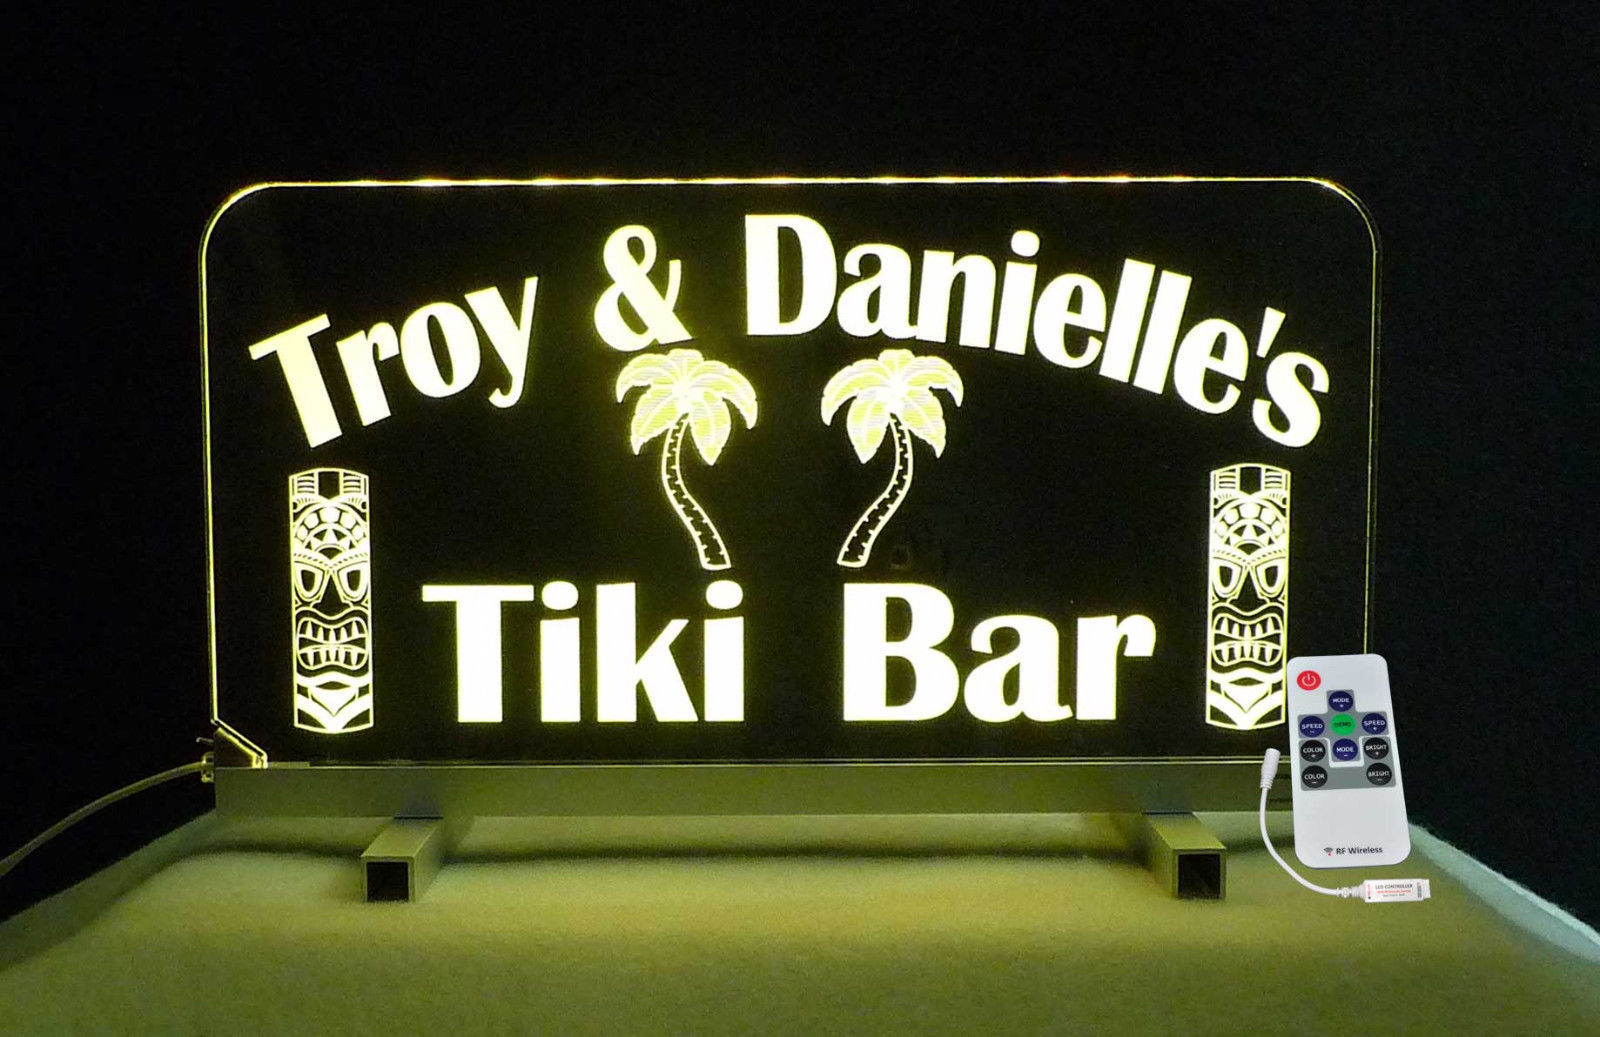 Tiki Bar Sign, Man Cave Sign, Personalized Gift for her, Color Changing